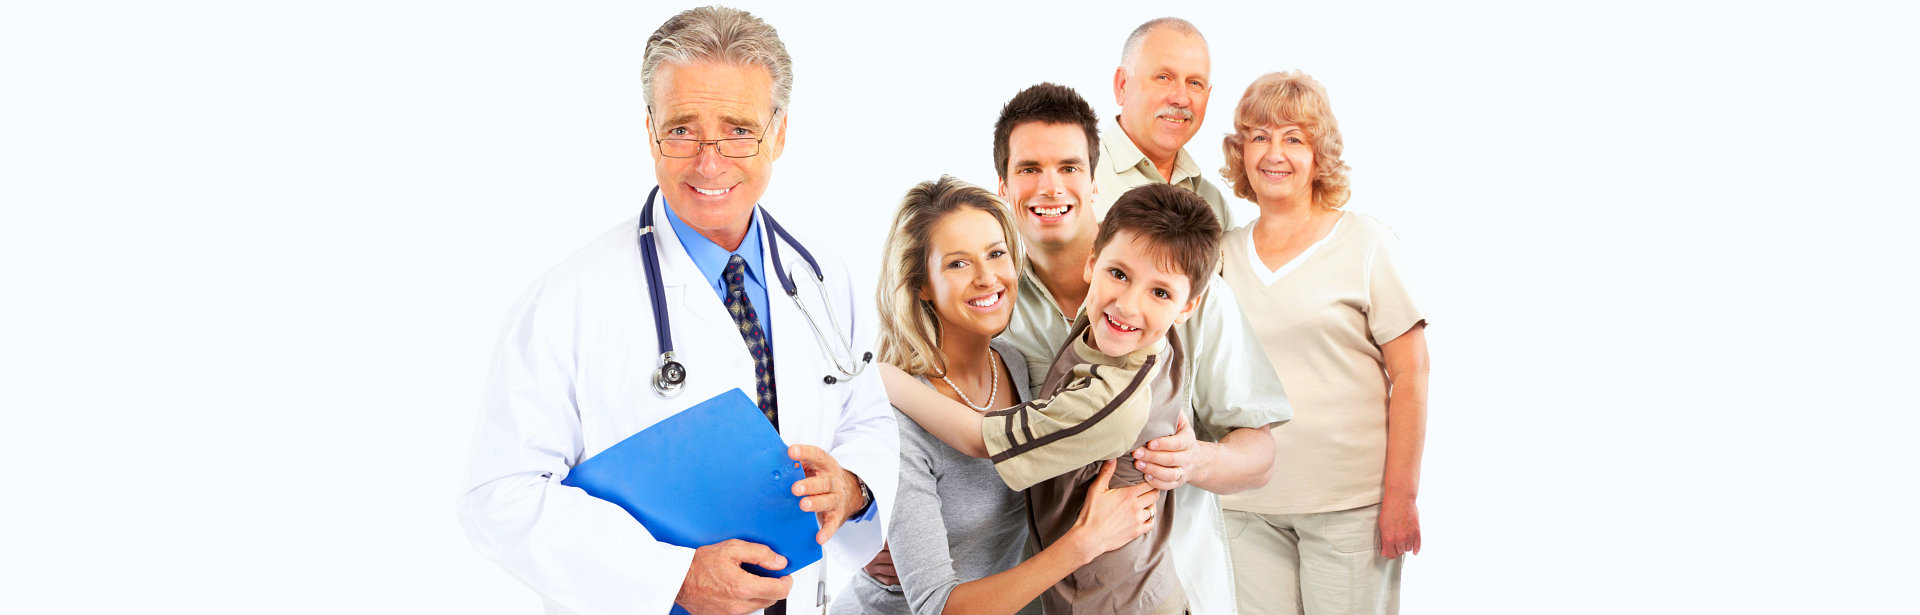 doctor together with the family looks happy